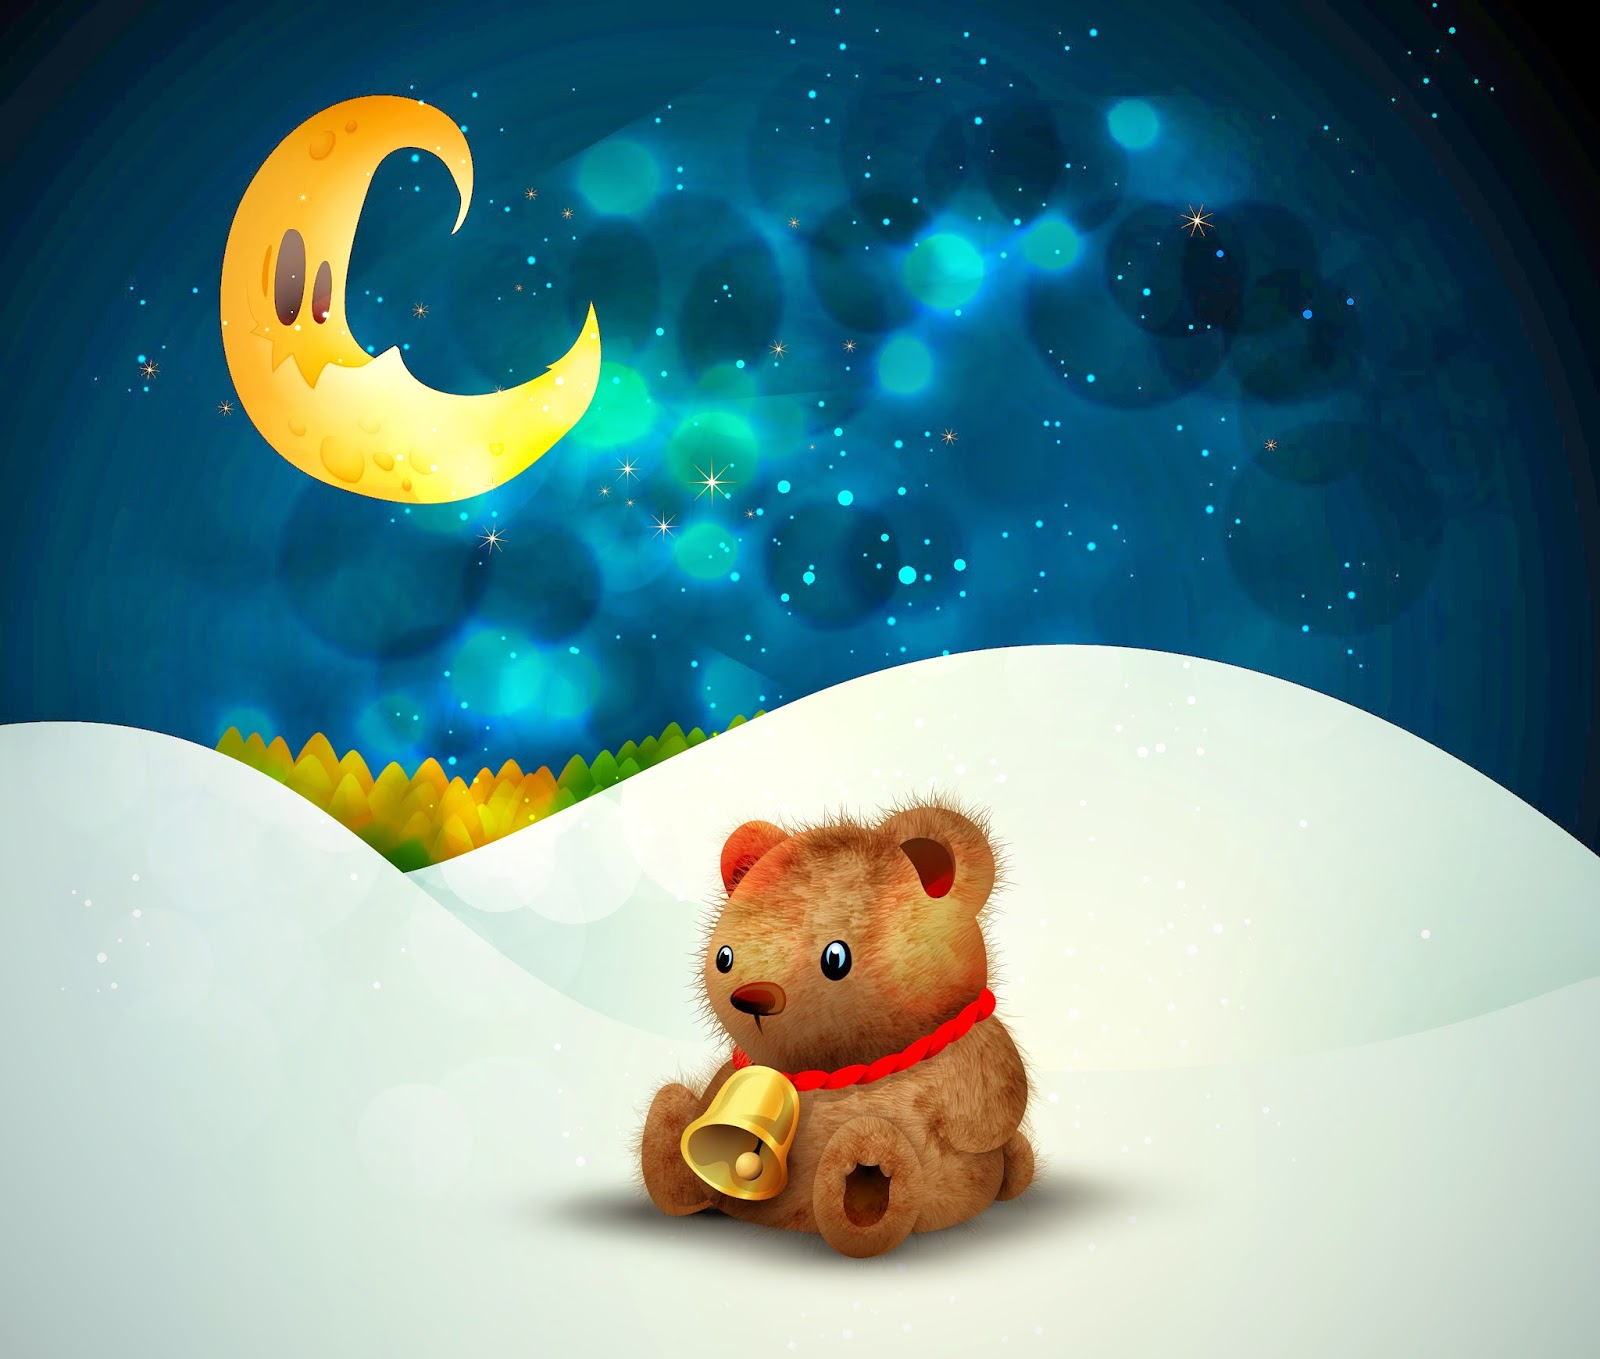 cute-little-teddy-bear-christmas-snow-moon-night-stars-image-x-wallpaper-wp3404353